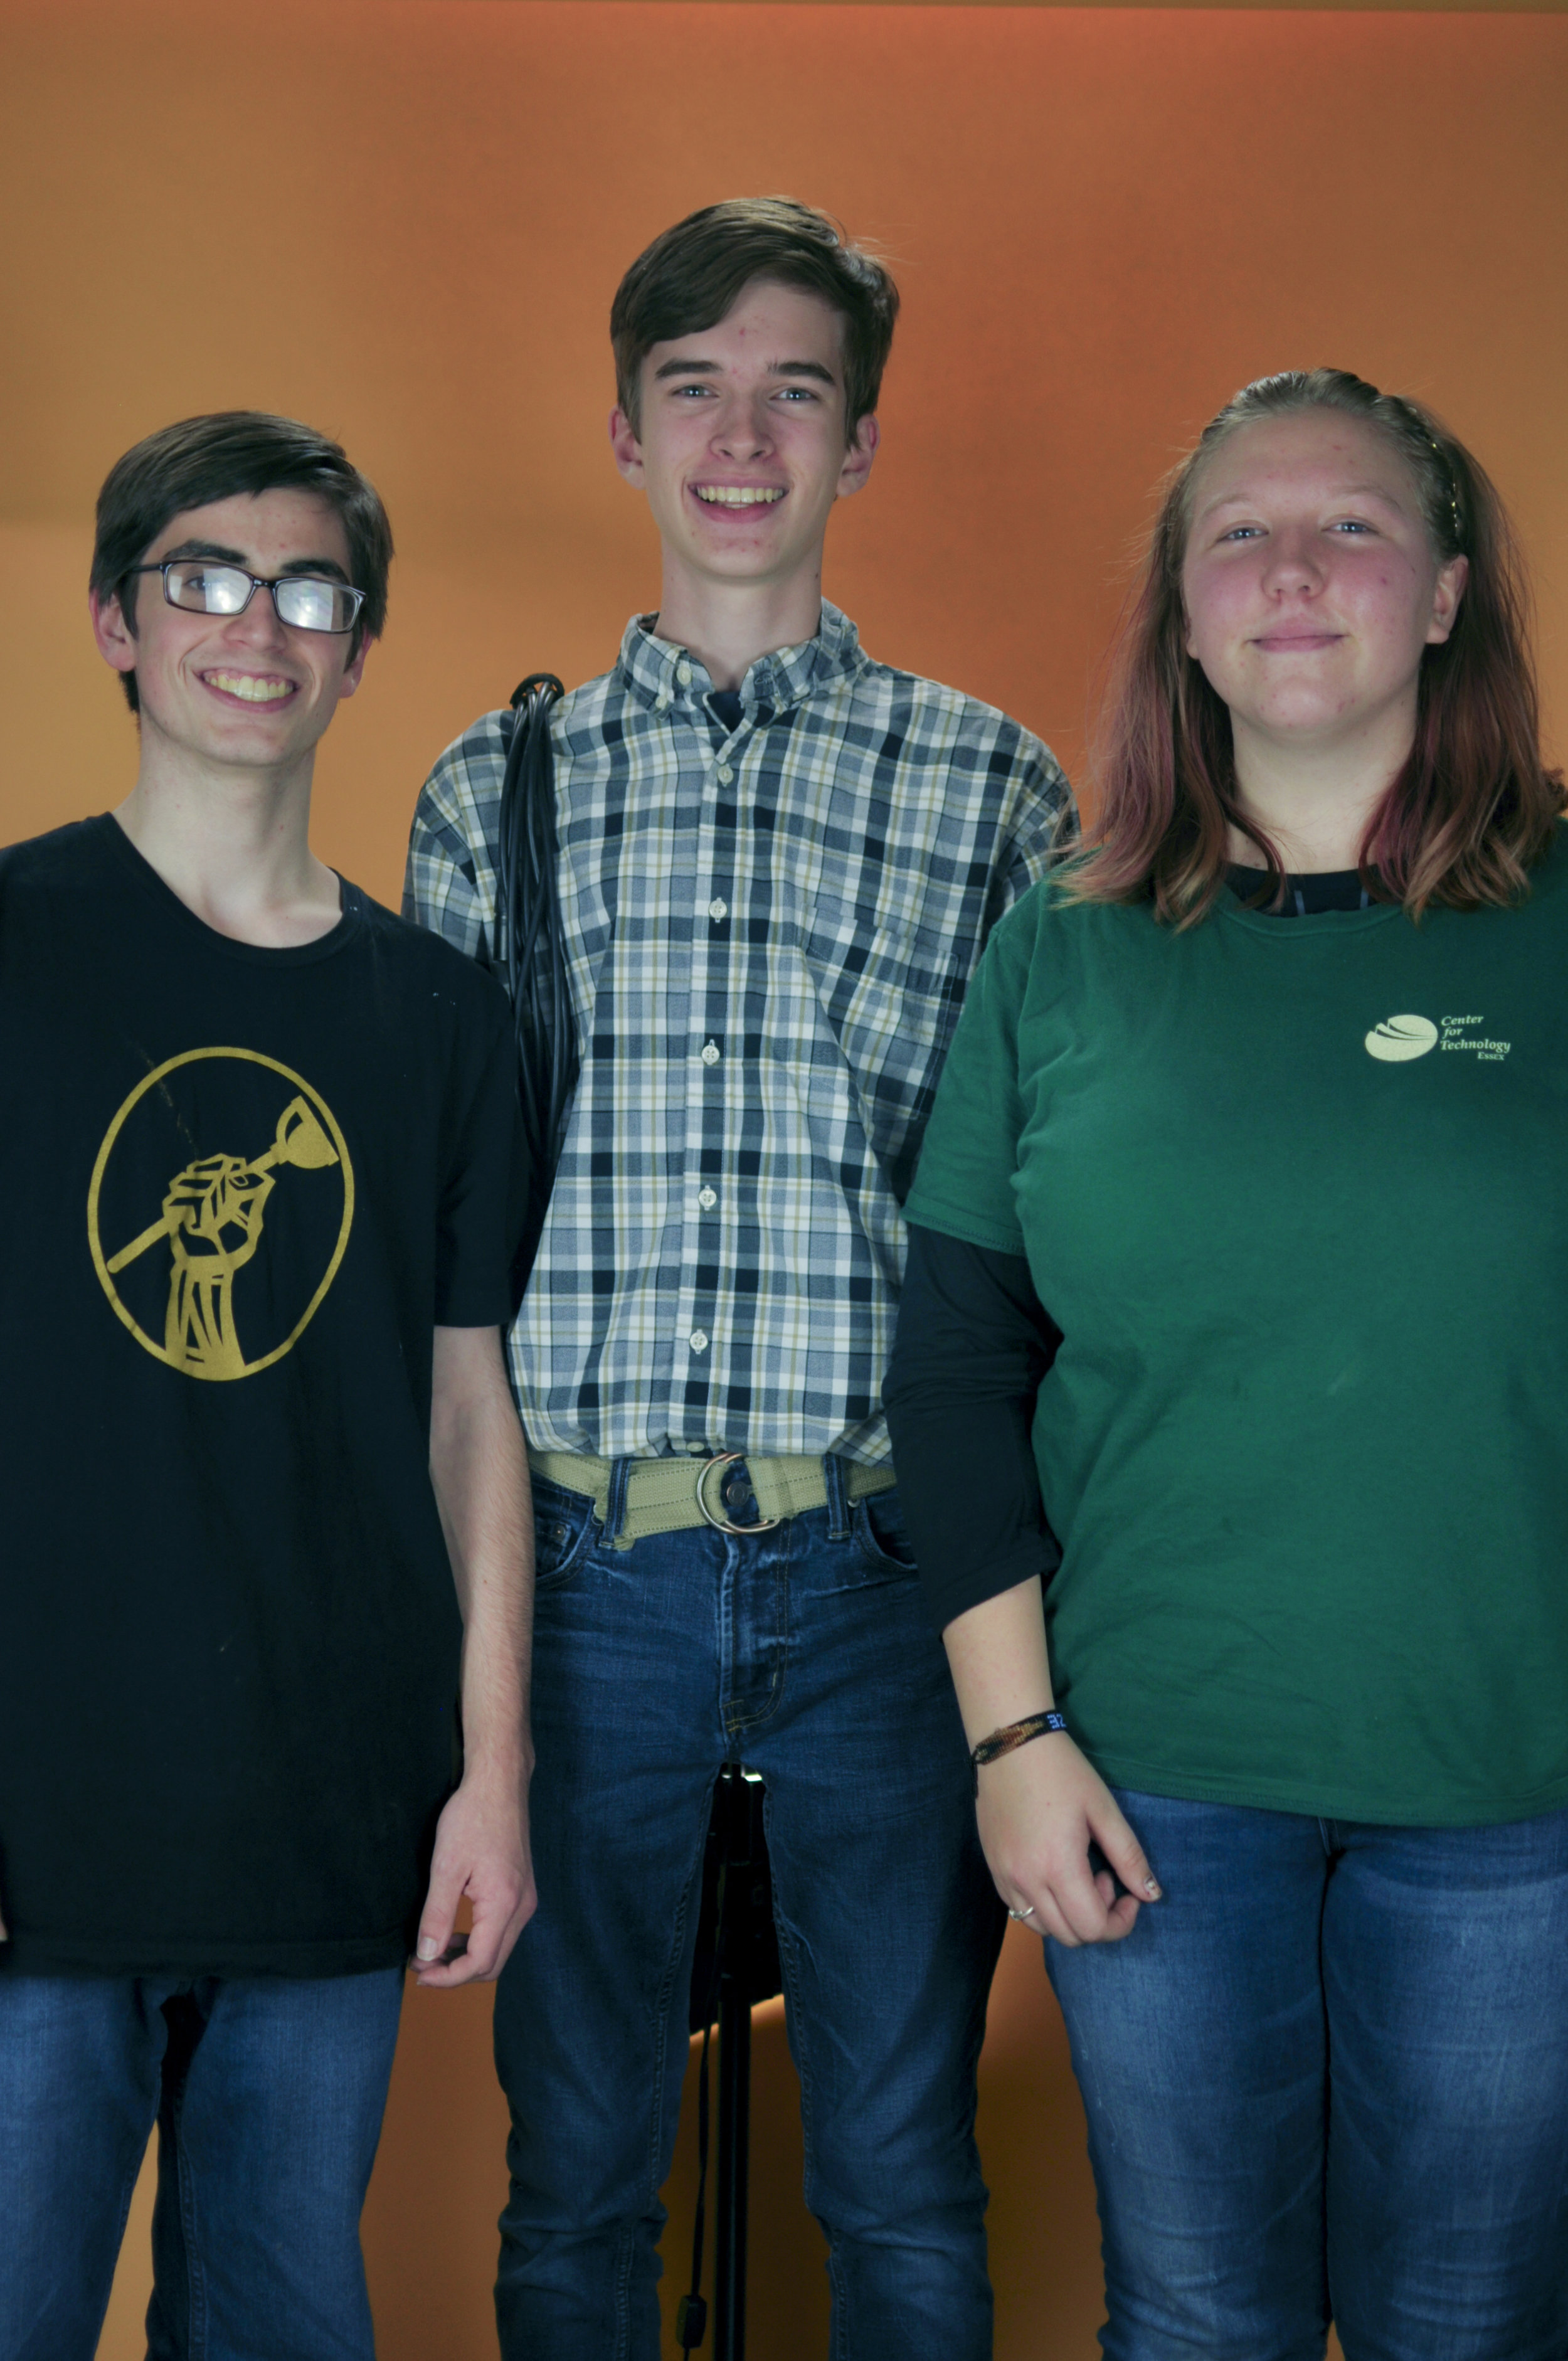 Stage Managers - Matt Tupaj, Courtney Berscheid, Isaak Olson